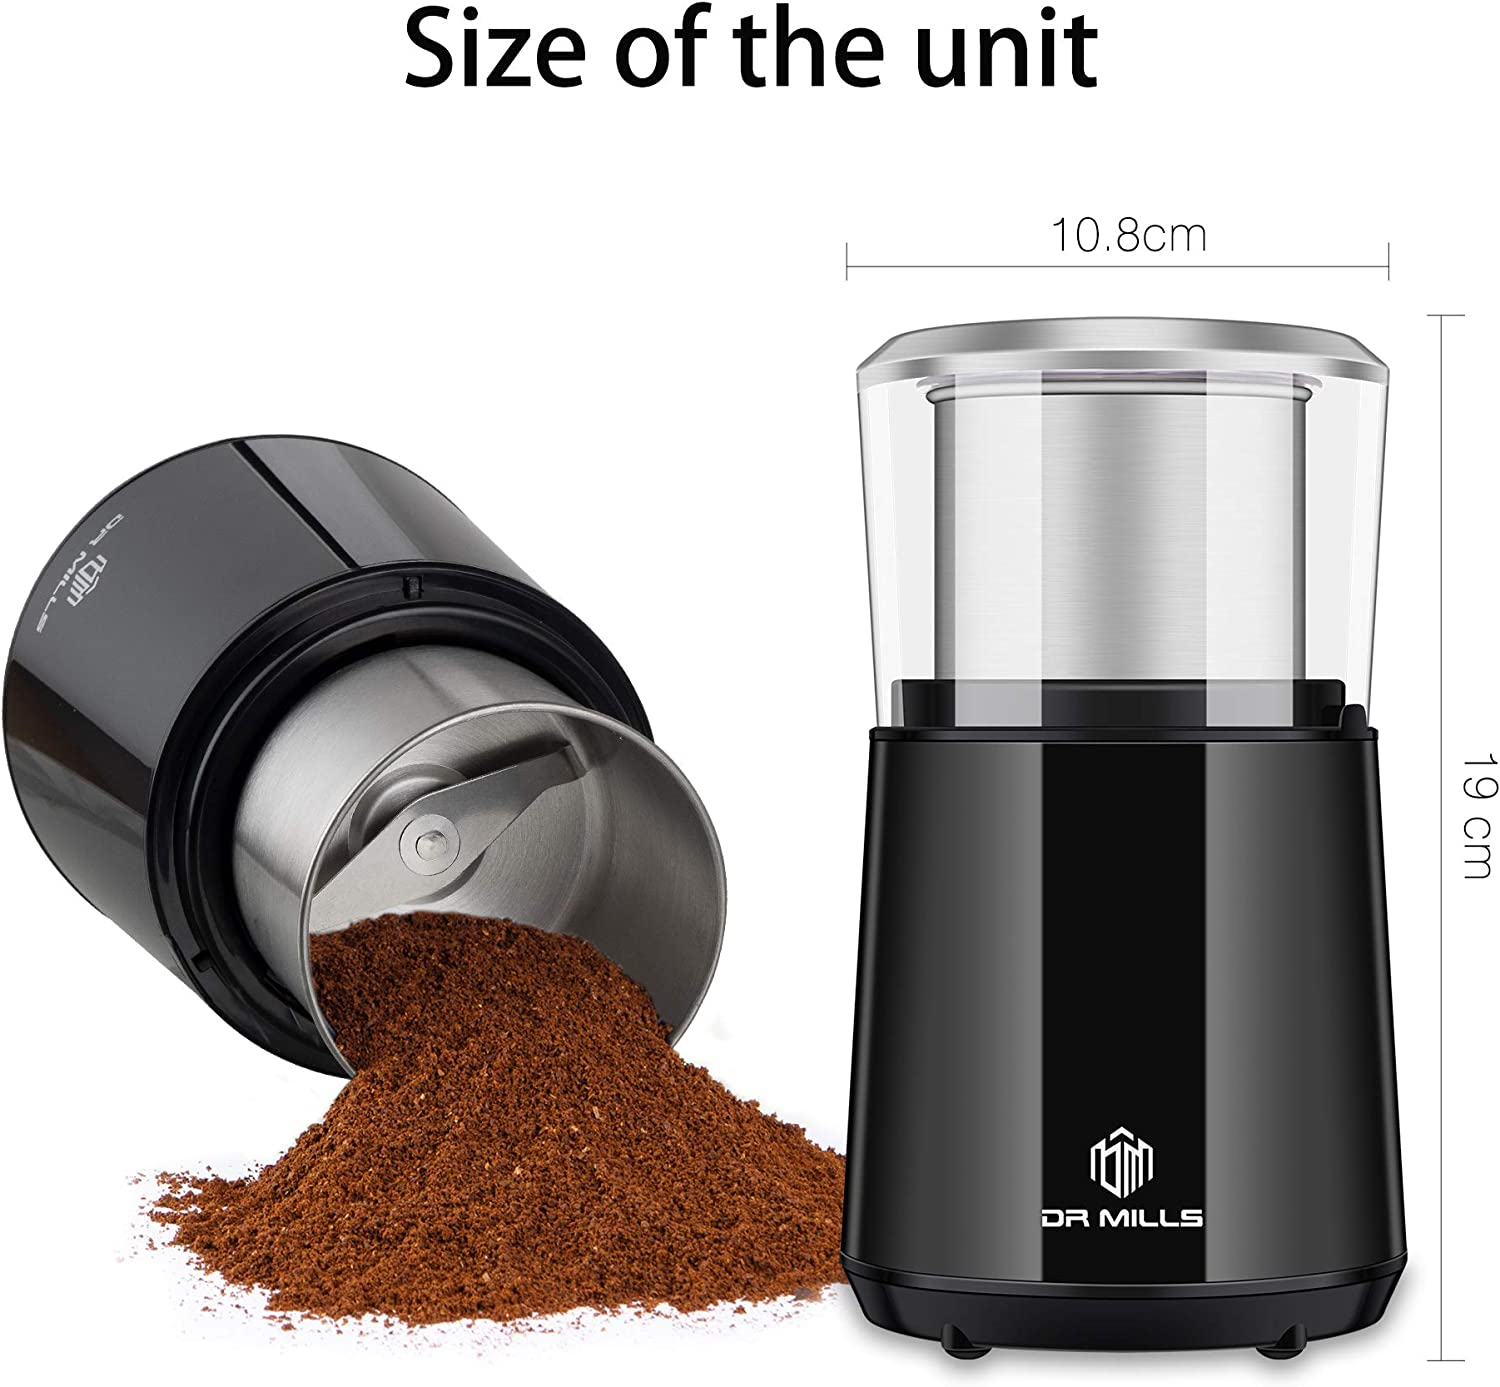 Blade /& cup made with SUS304 stianlees steel DR MILLS DM-7451 Electric Dried Spice and Coffee Grinder,detachable cup OK for clean it with water